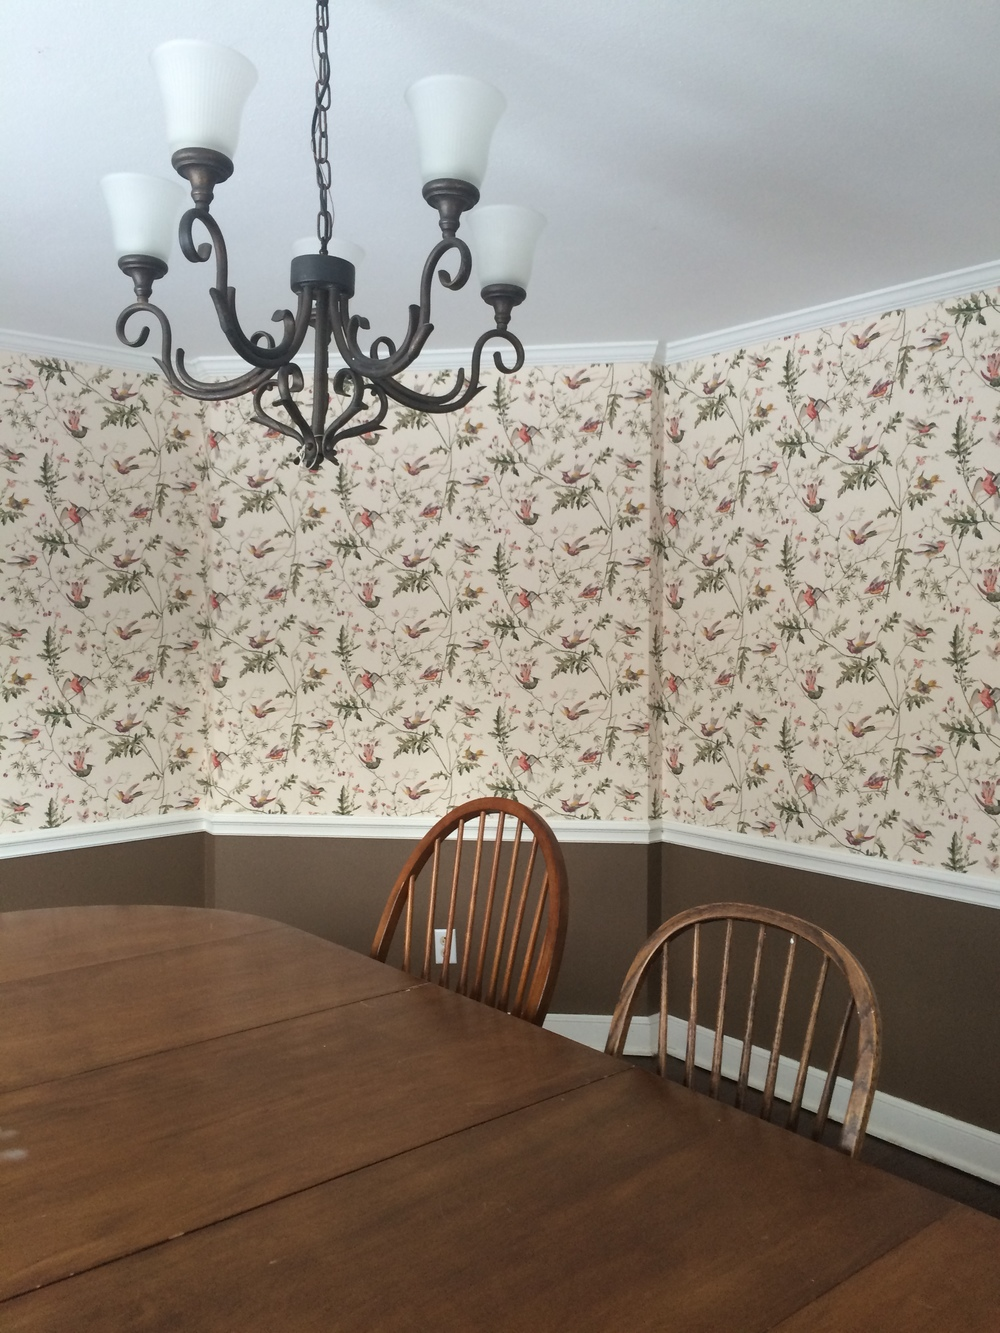 More of that lovely wallpaper in Bethany!